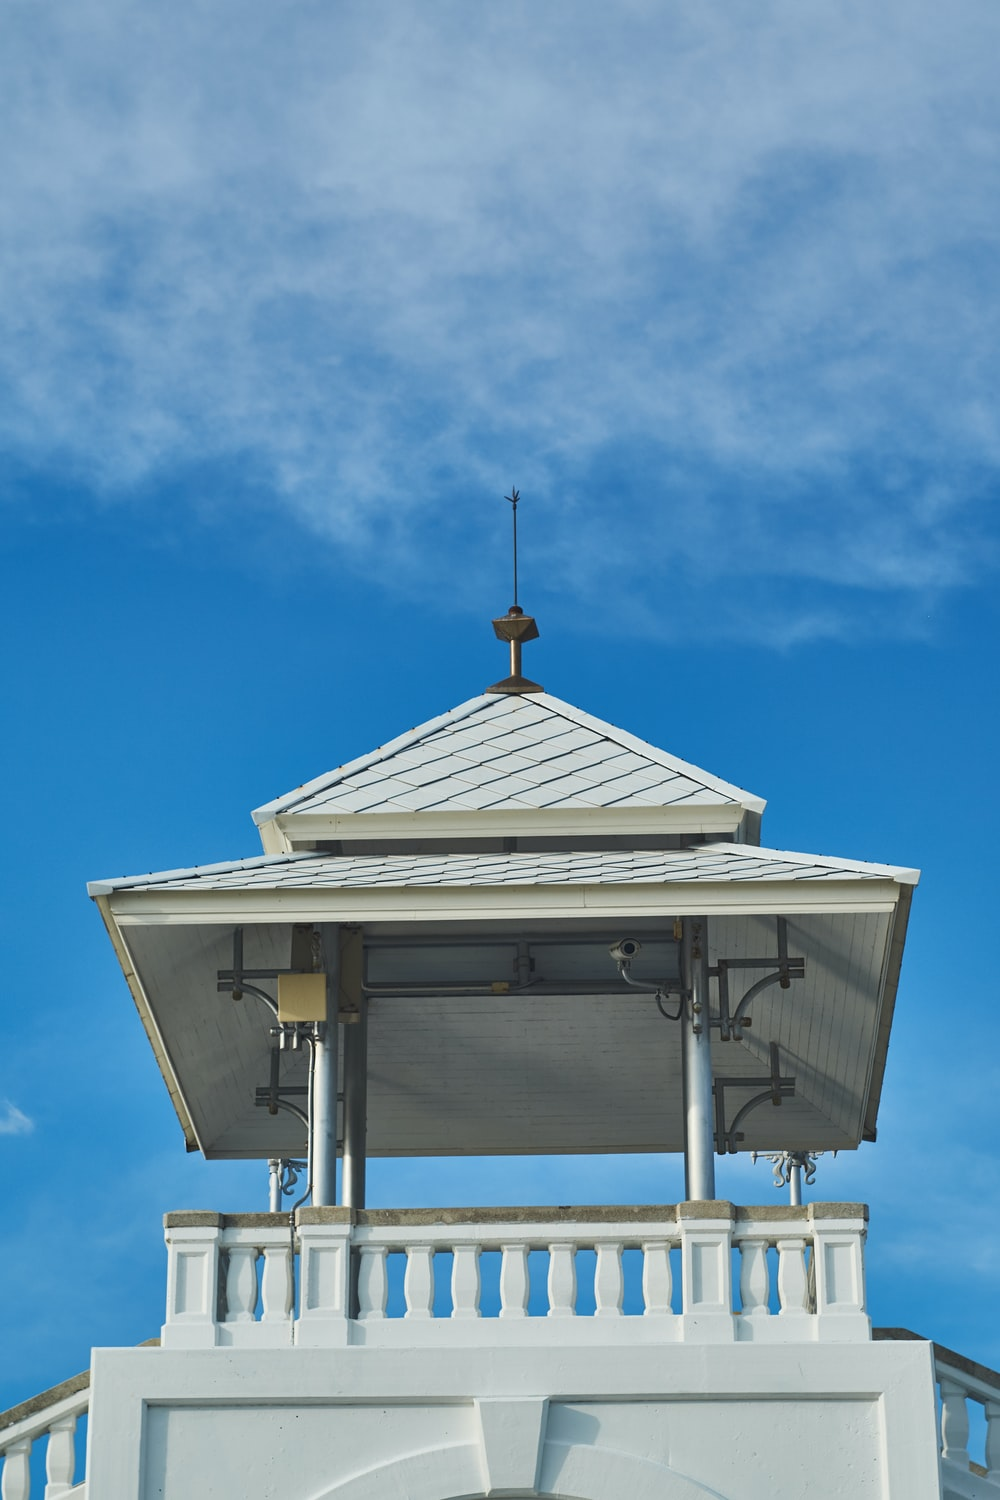 white and brown wooden gazebo under blue sky during daytime